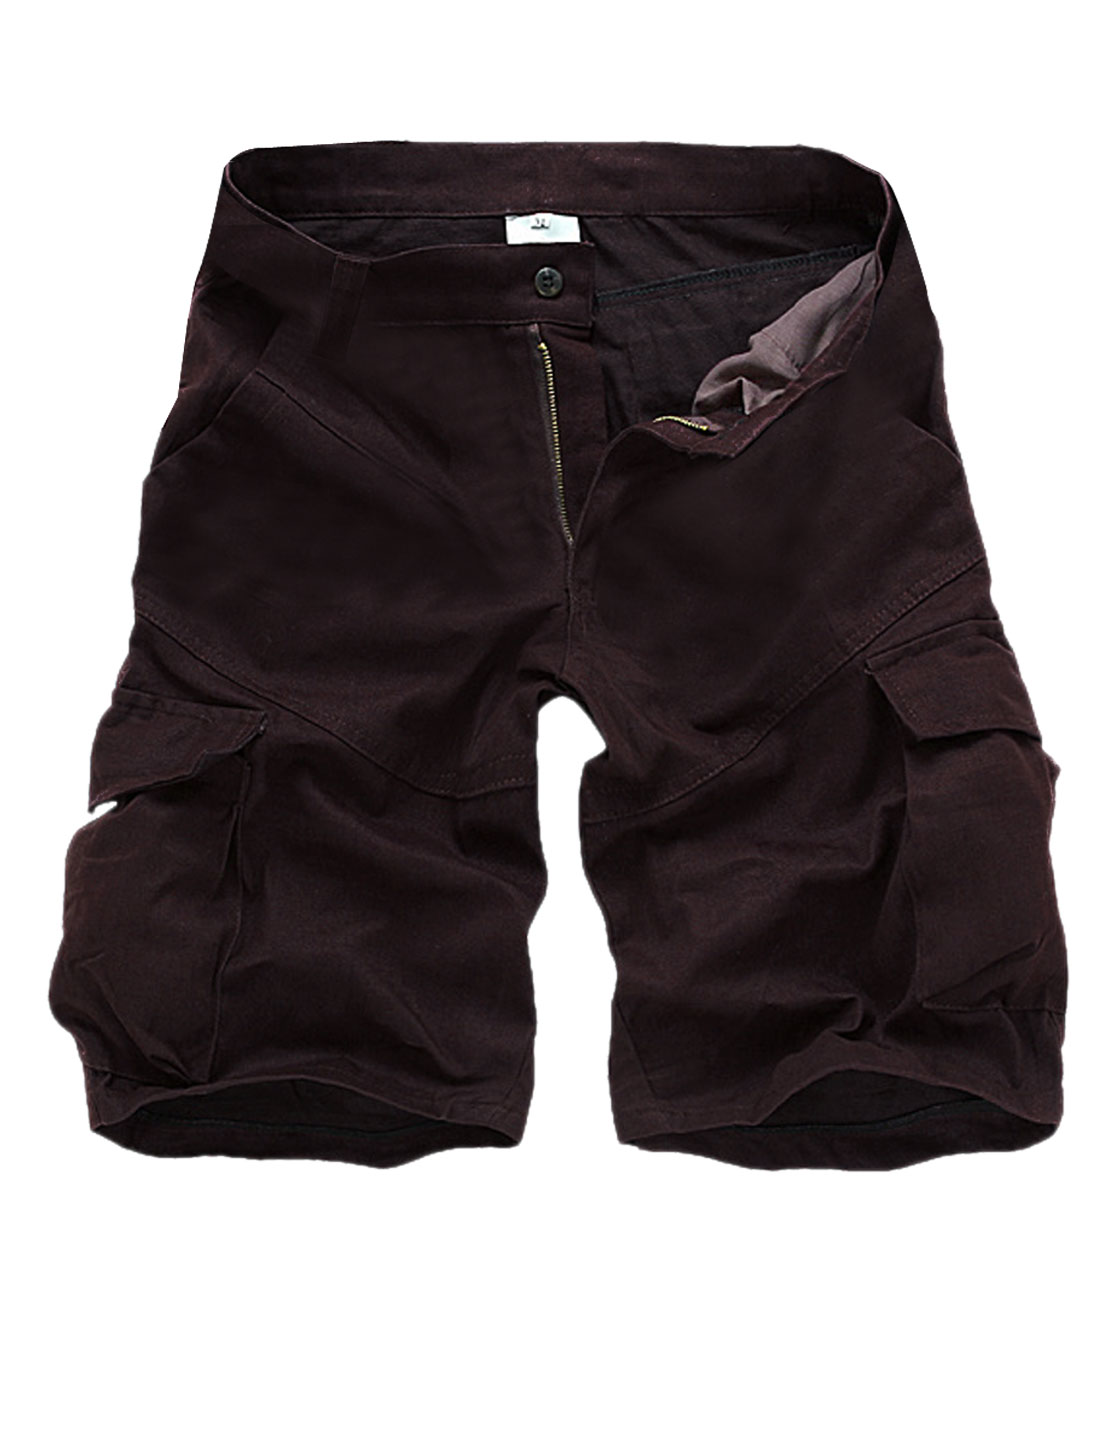 Men Waistband Loop Zip Up Cover Hip Pockets Casual Short Pants Dark Plum W34